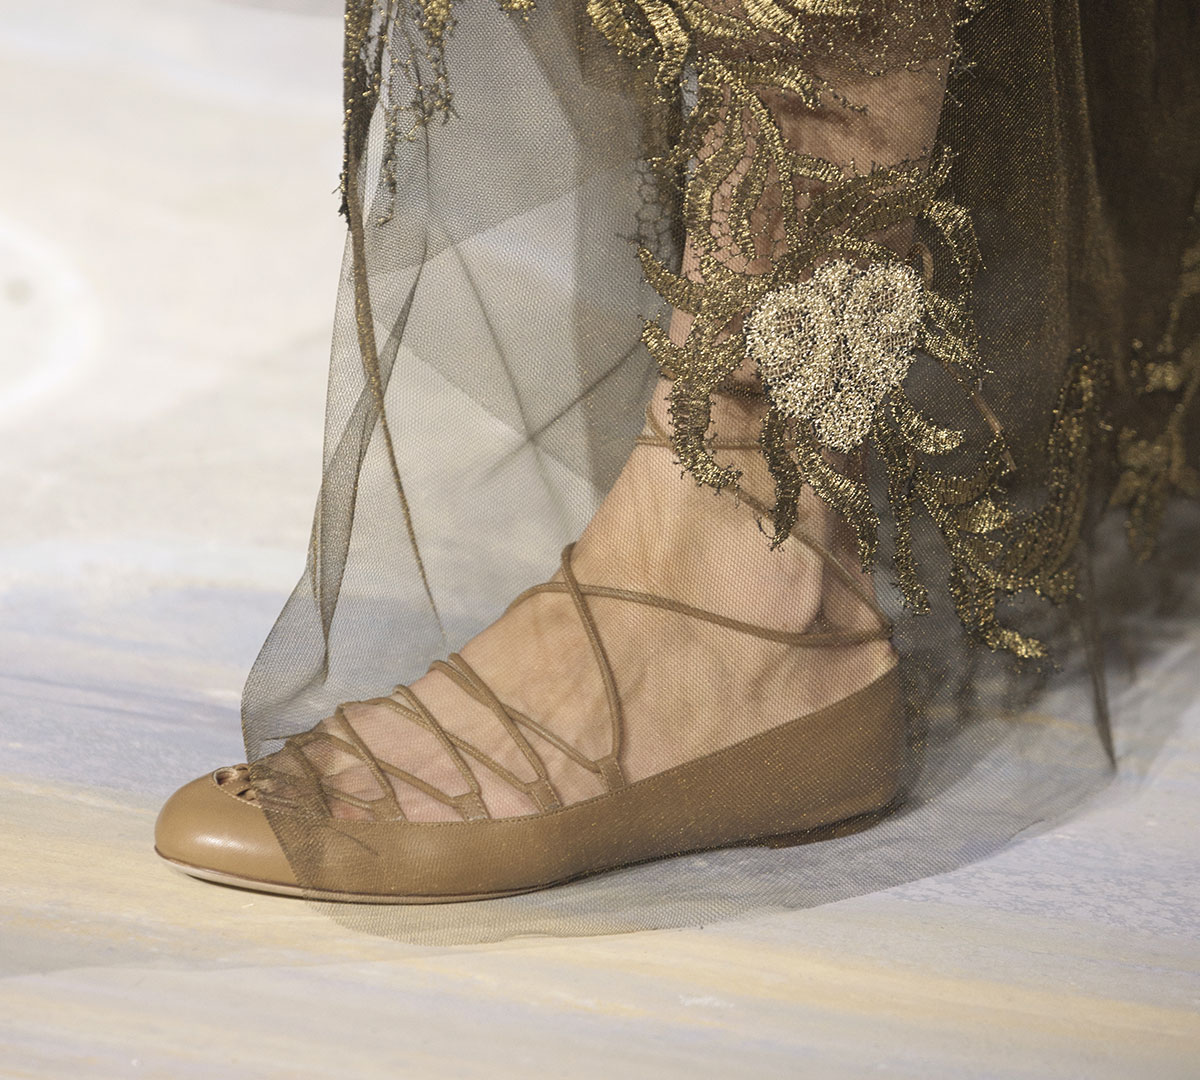 15918-haute-couture-spring-summer-2014